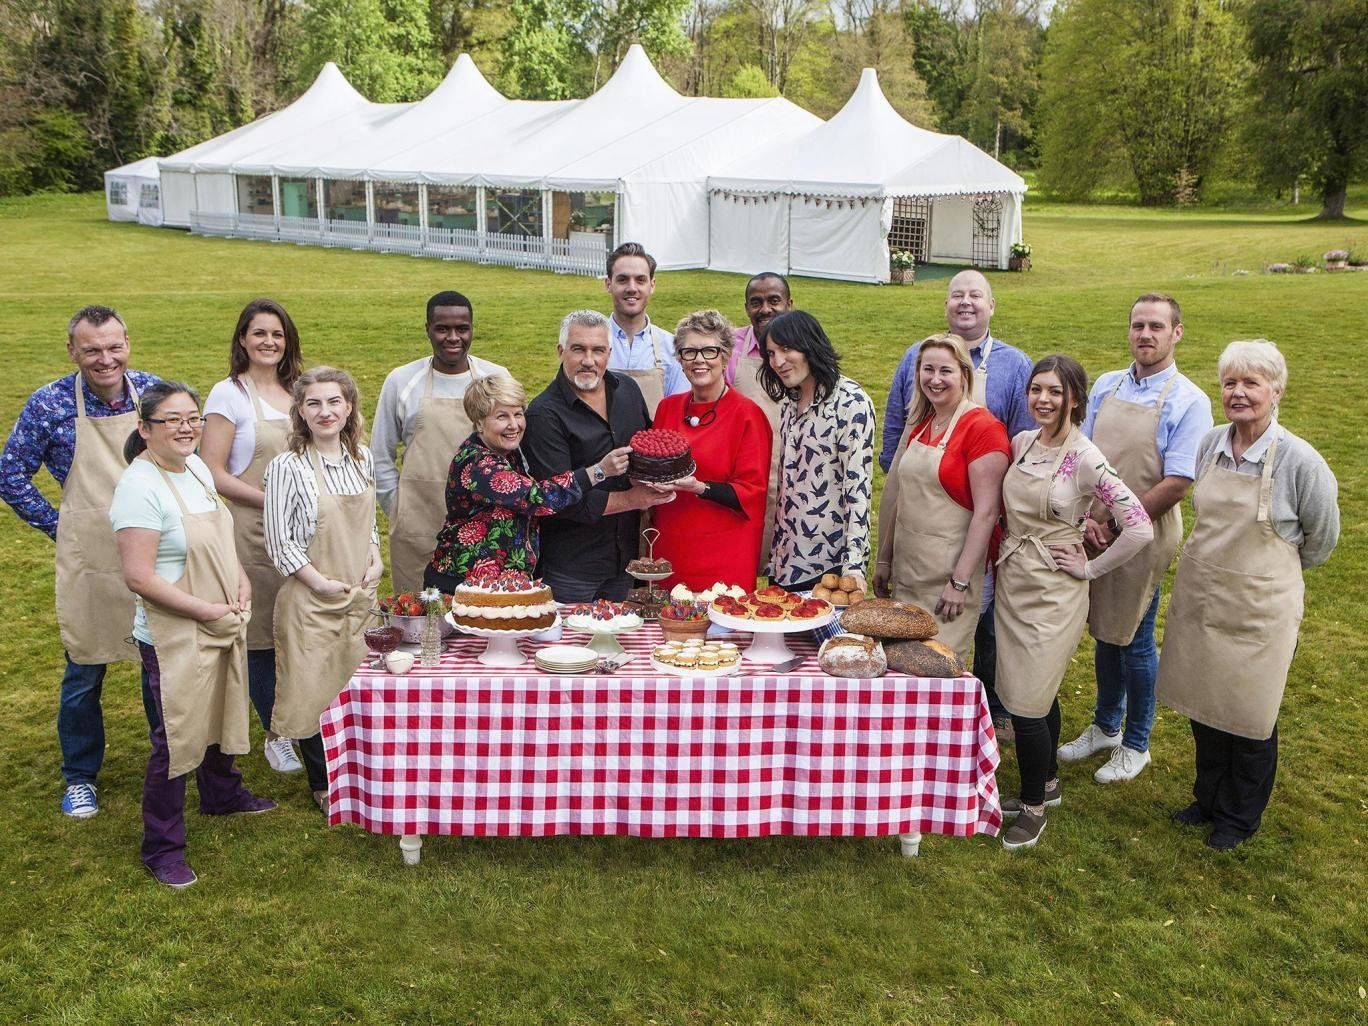 'Great British Bake Off': Viewers Give The Series The Thumbs Up... But Hate The